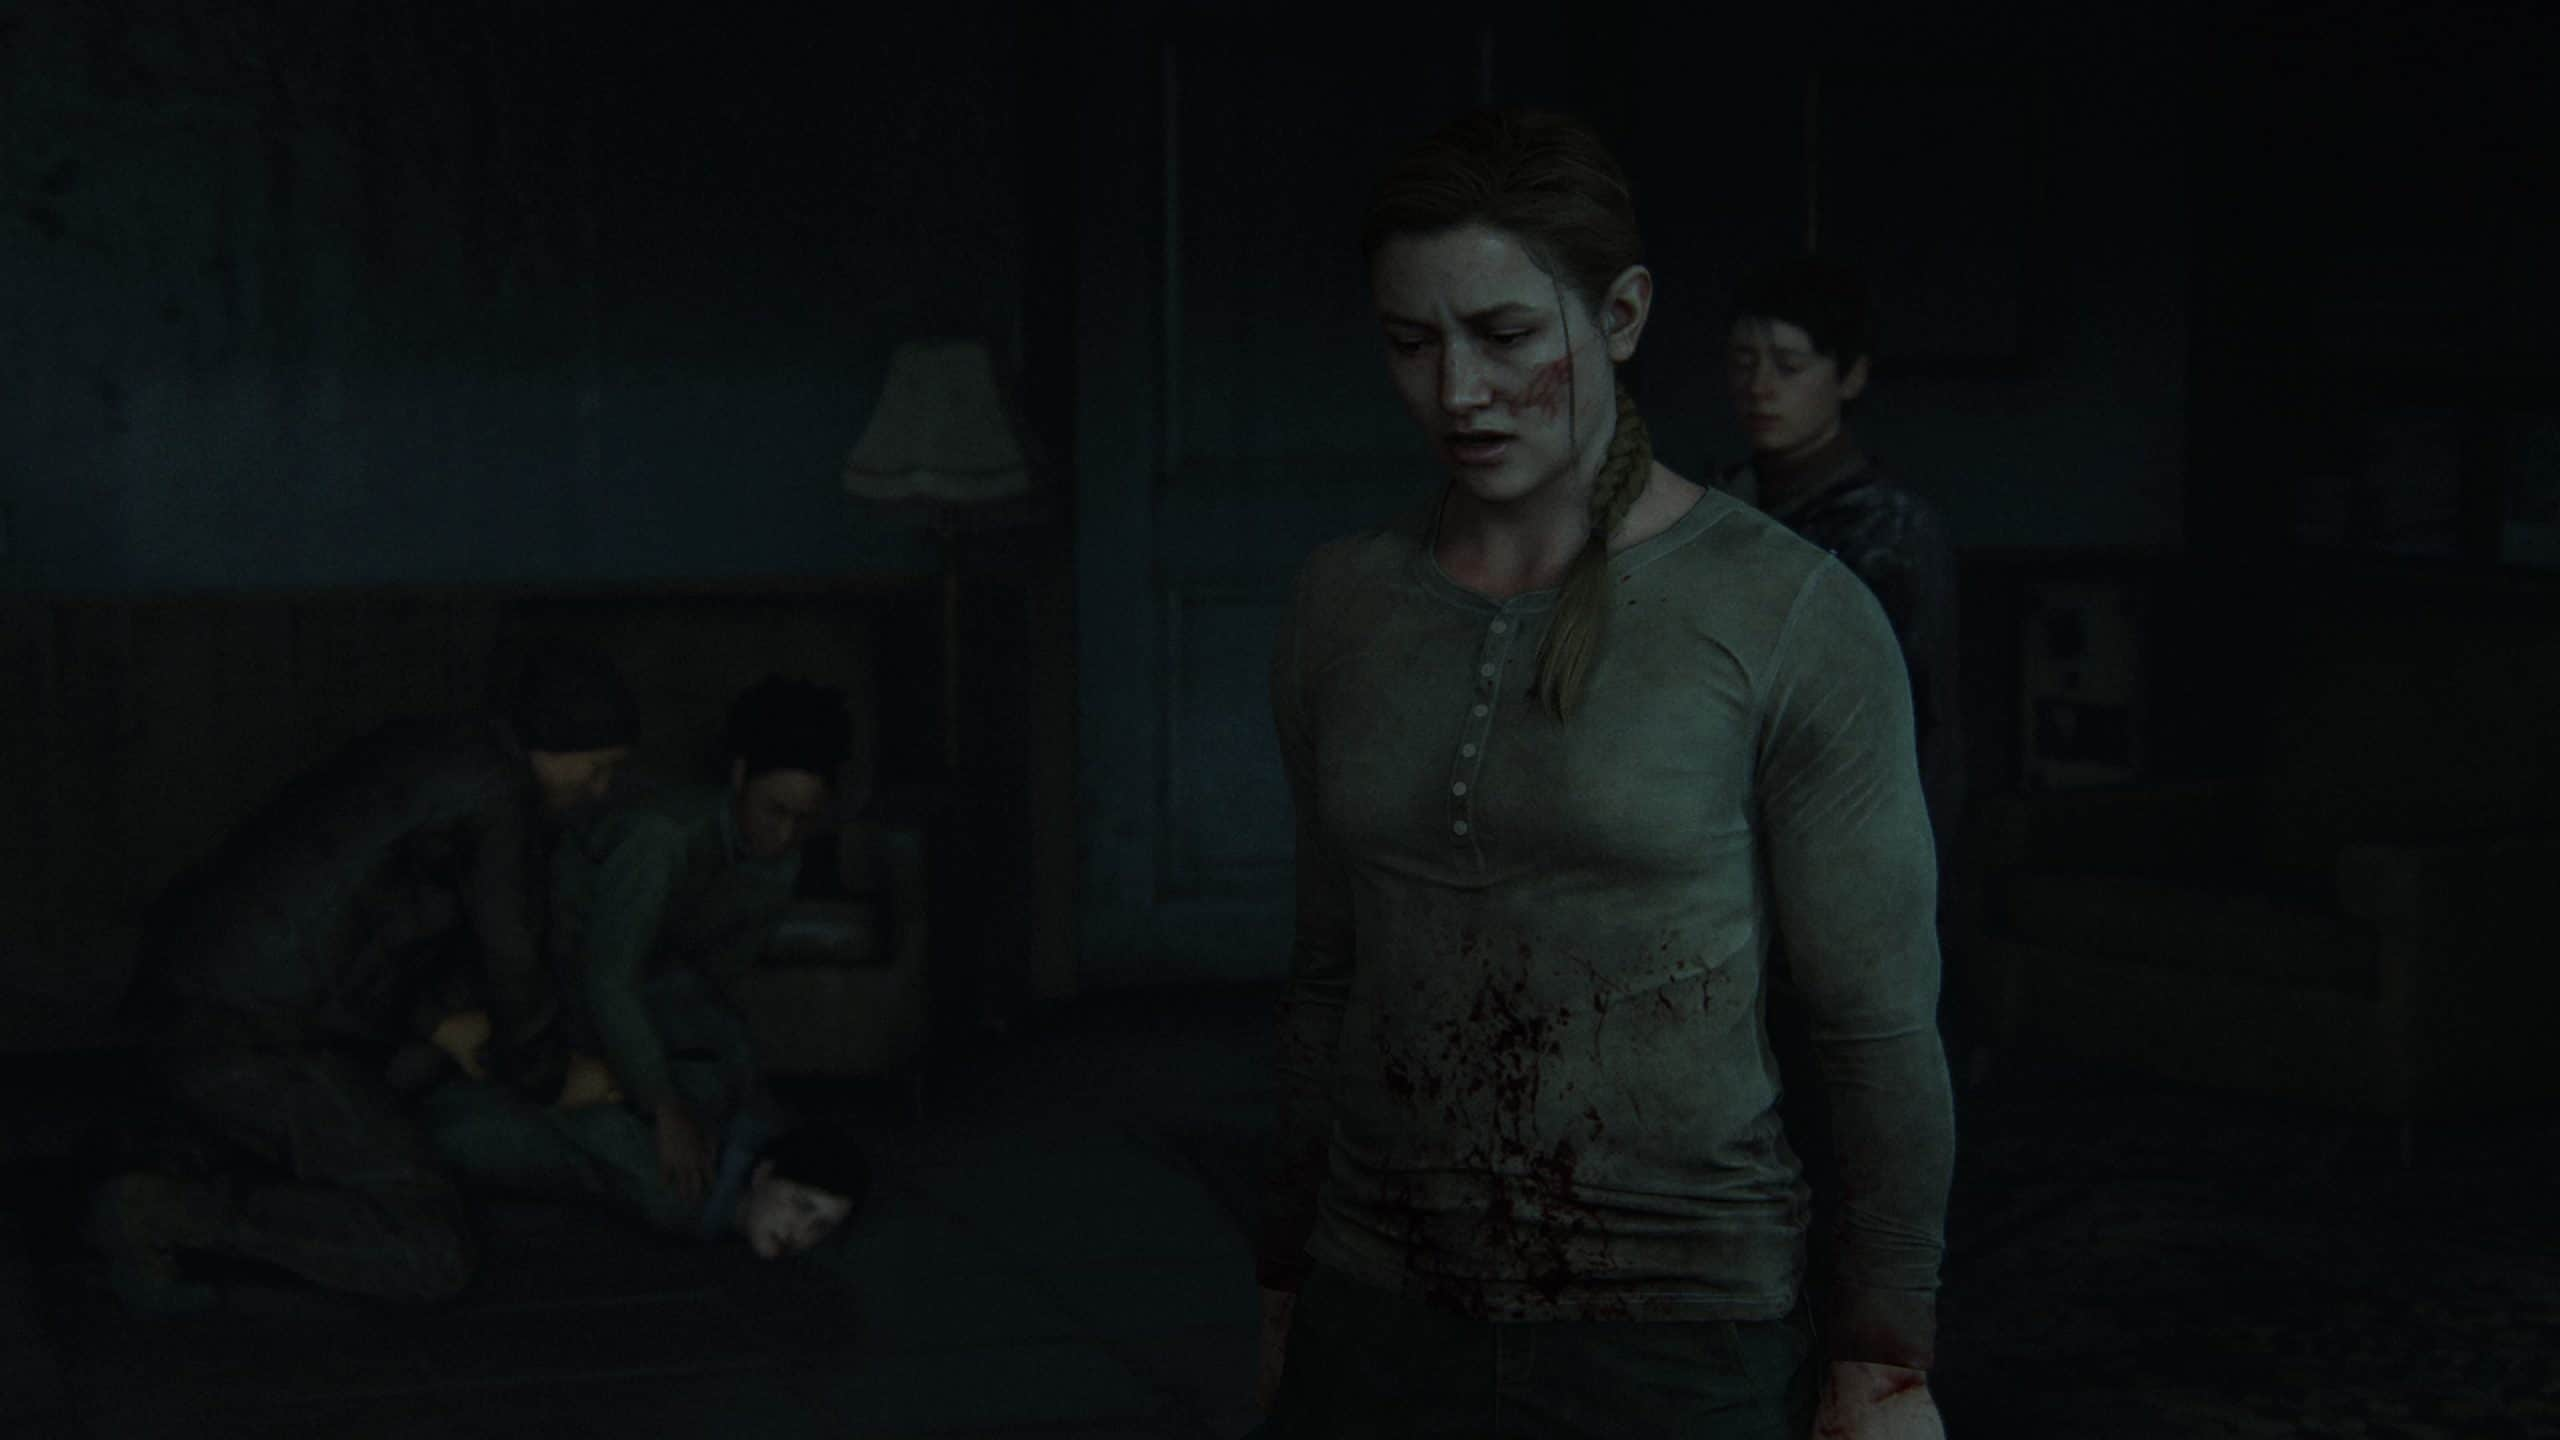 The Last Of Us 2: Ecco perchè Abby usa una mazza da golf